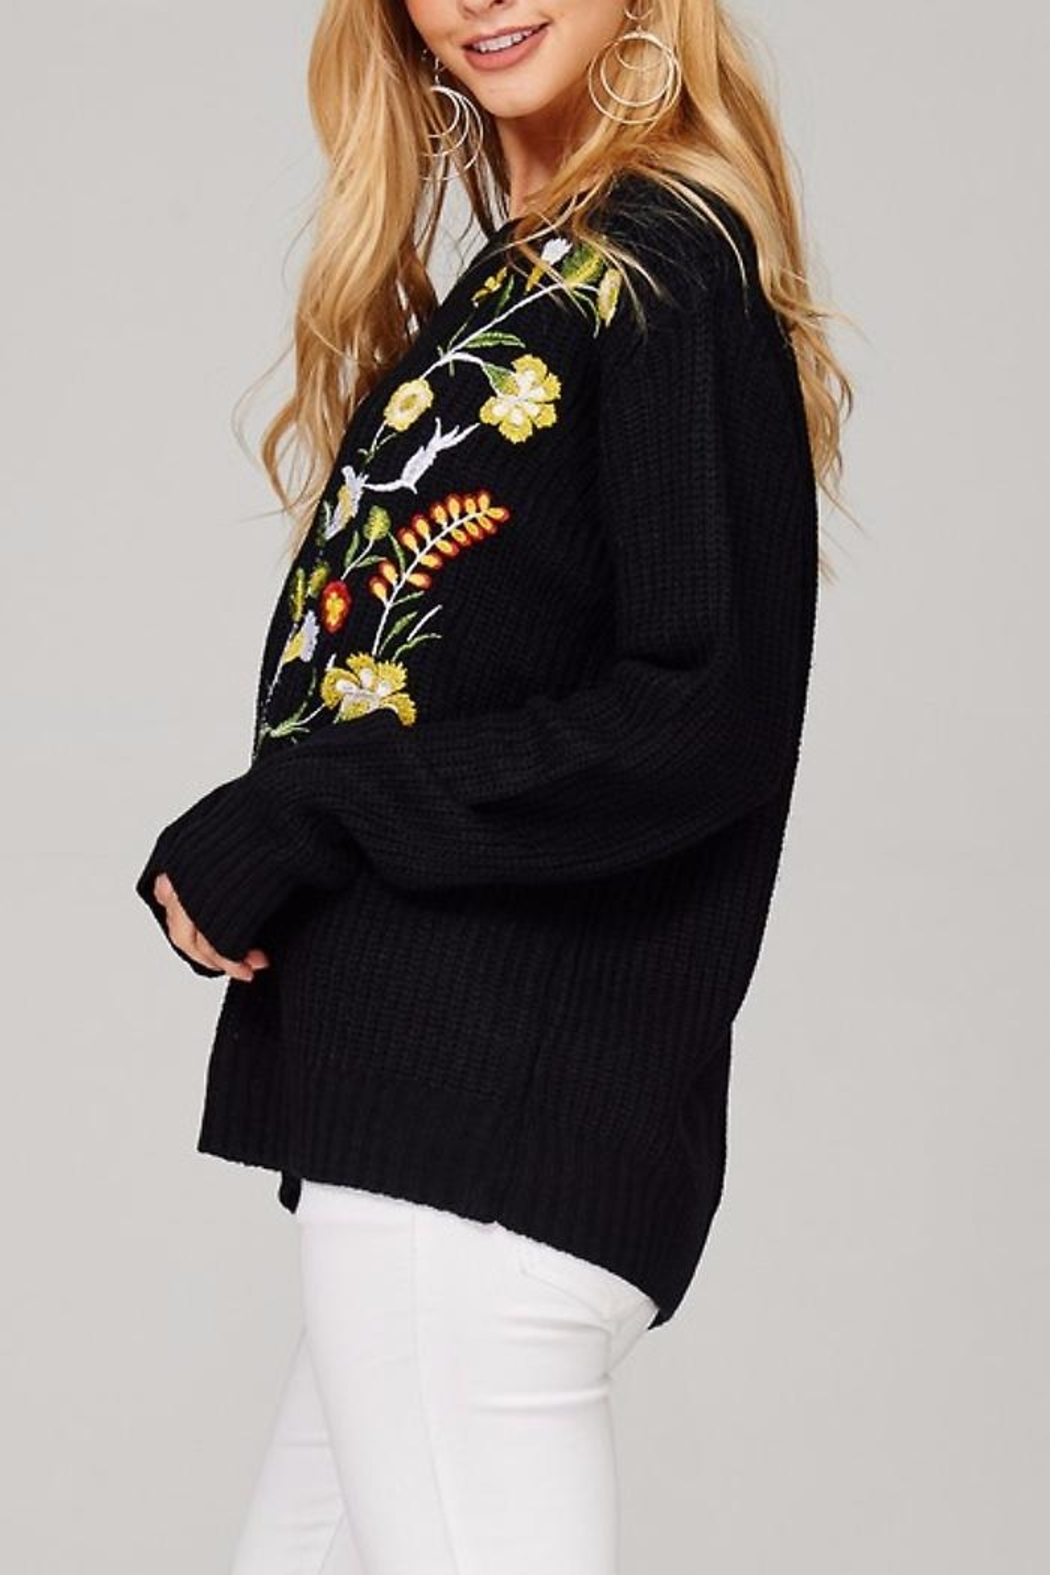 People Outfitter Kaylee's Floral Sweater - Front Full Image